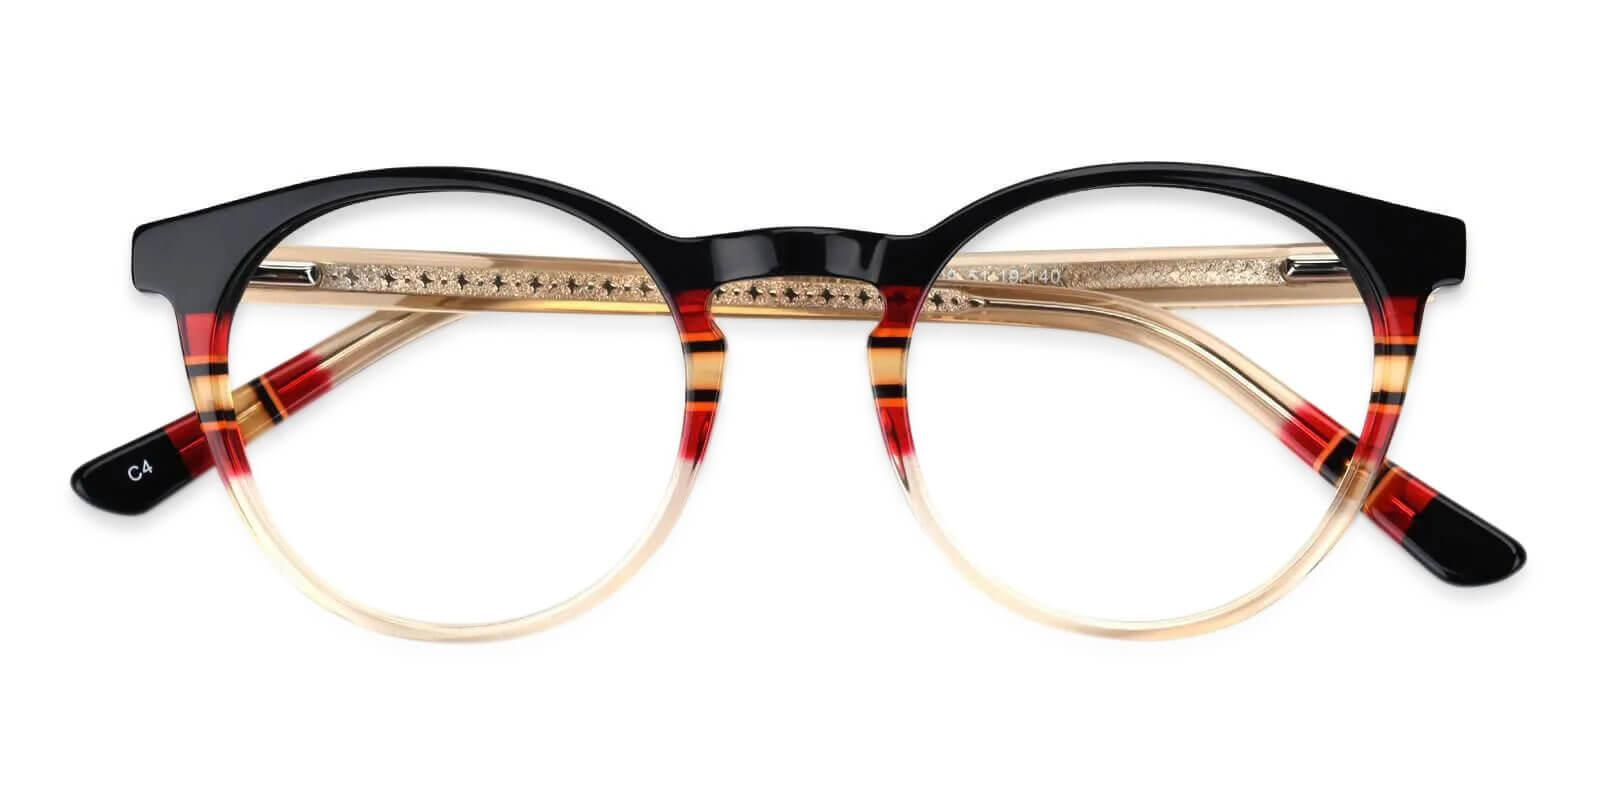 Berounka Pattern Acetate Eyeglasses , UniversalBridgeFit Frames from ABBE Glasses